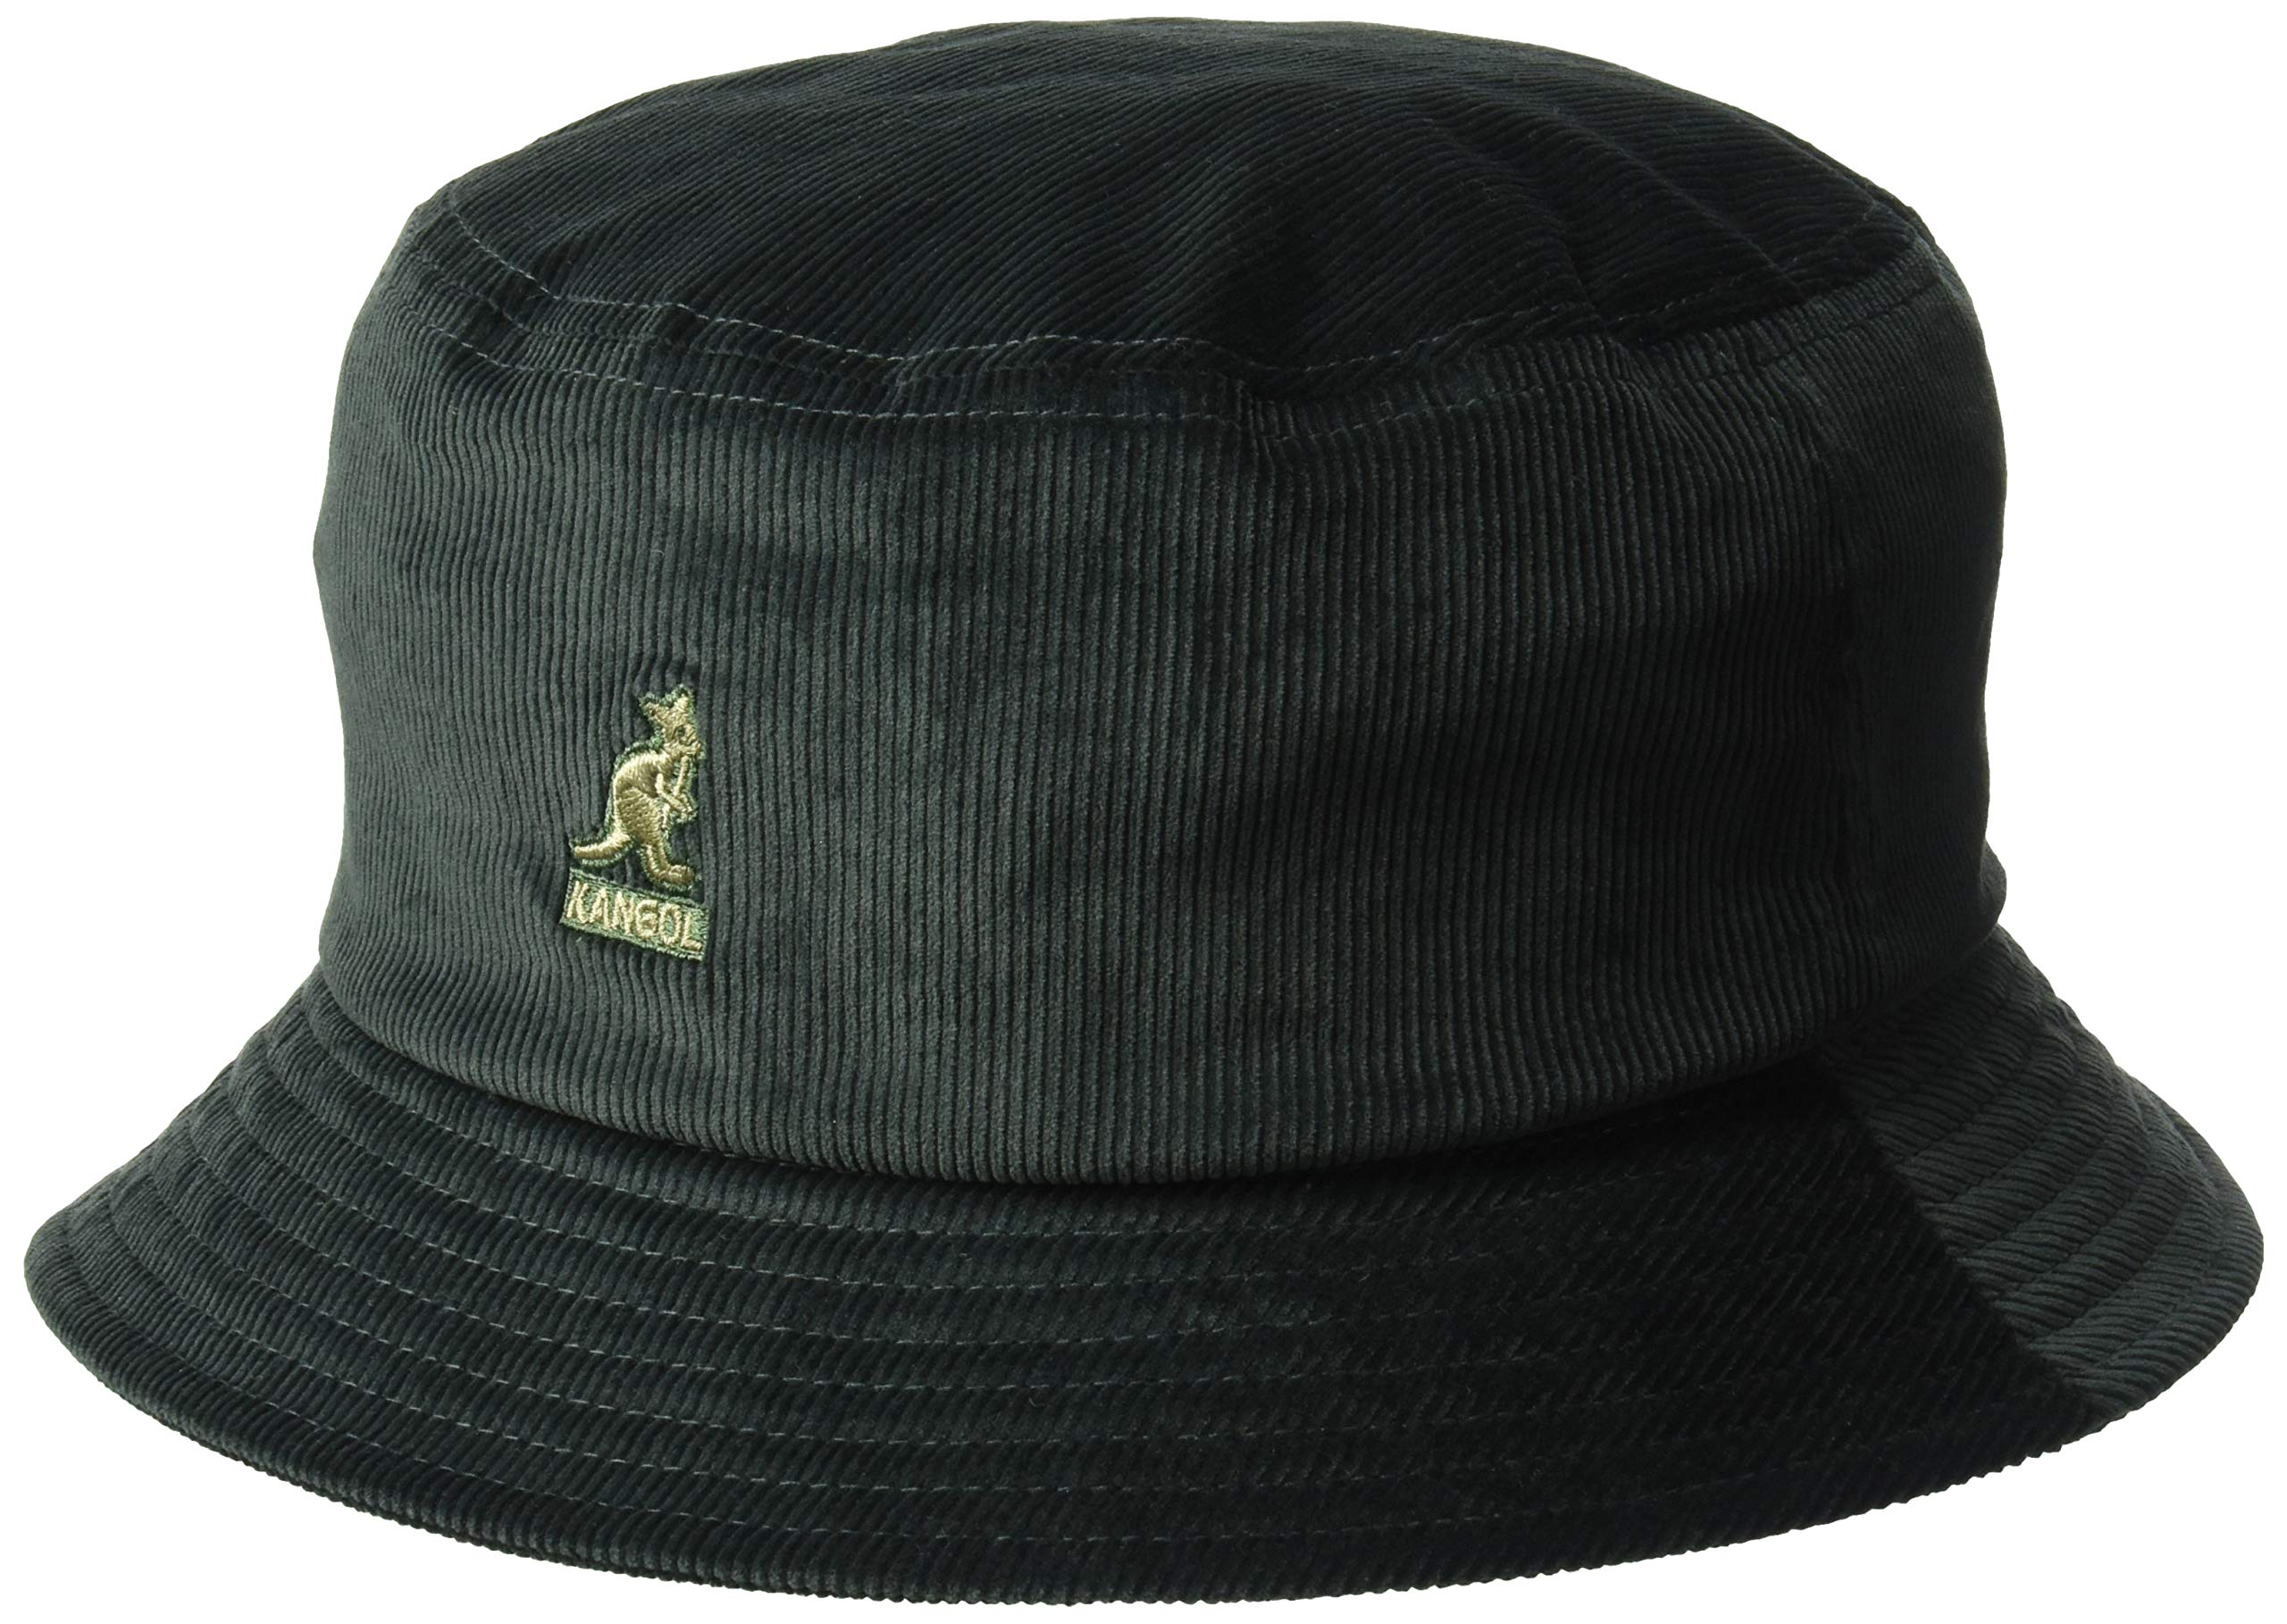 Kangol Men's Cord Bucket HAT, Forrester, M